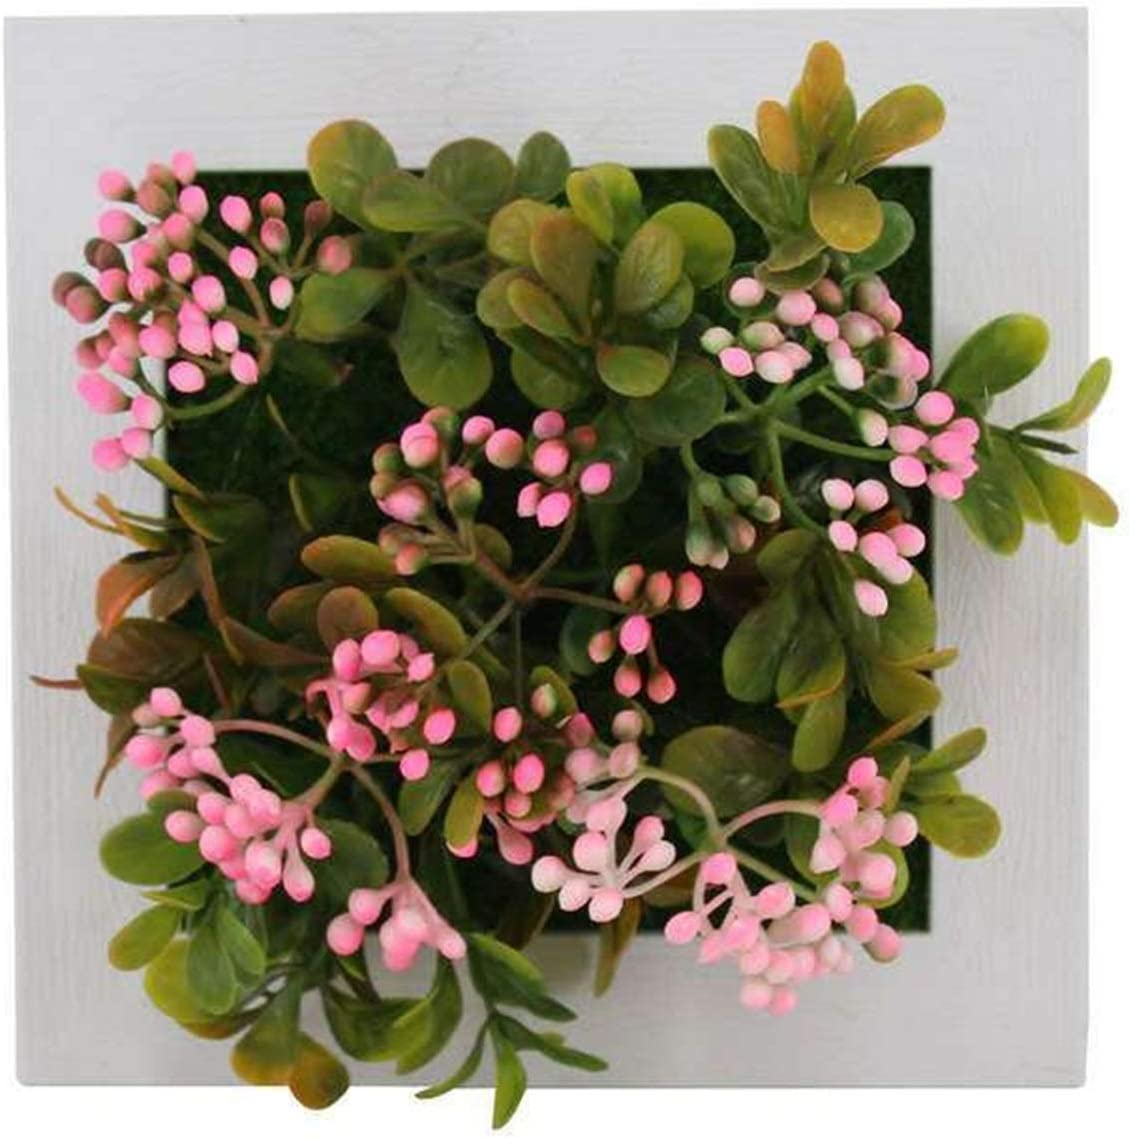 YZGLA Excellent Spring new work Fake Plant Simulation Photo Si Hanging Frame Wall Dγ